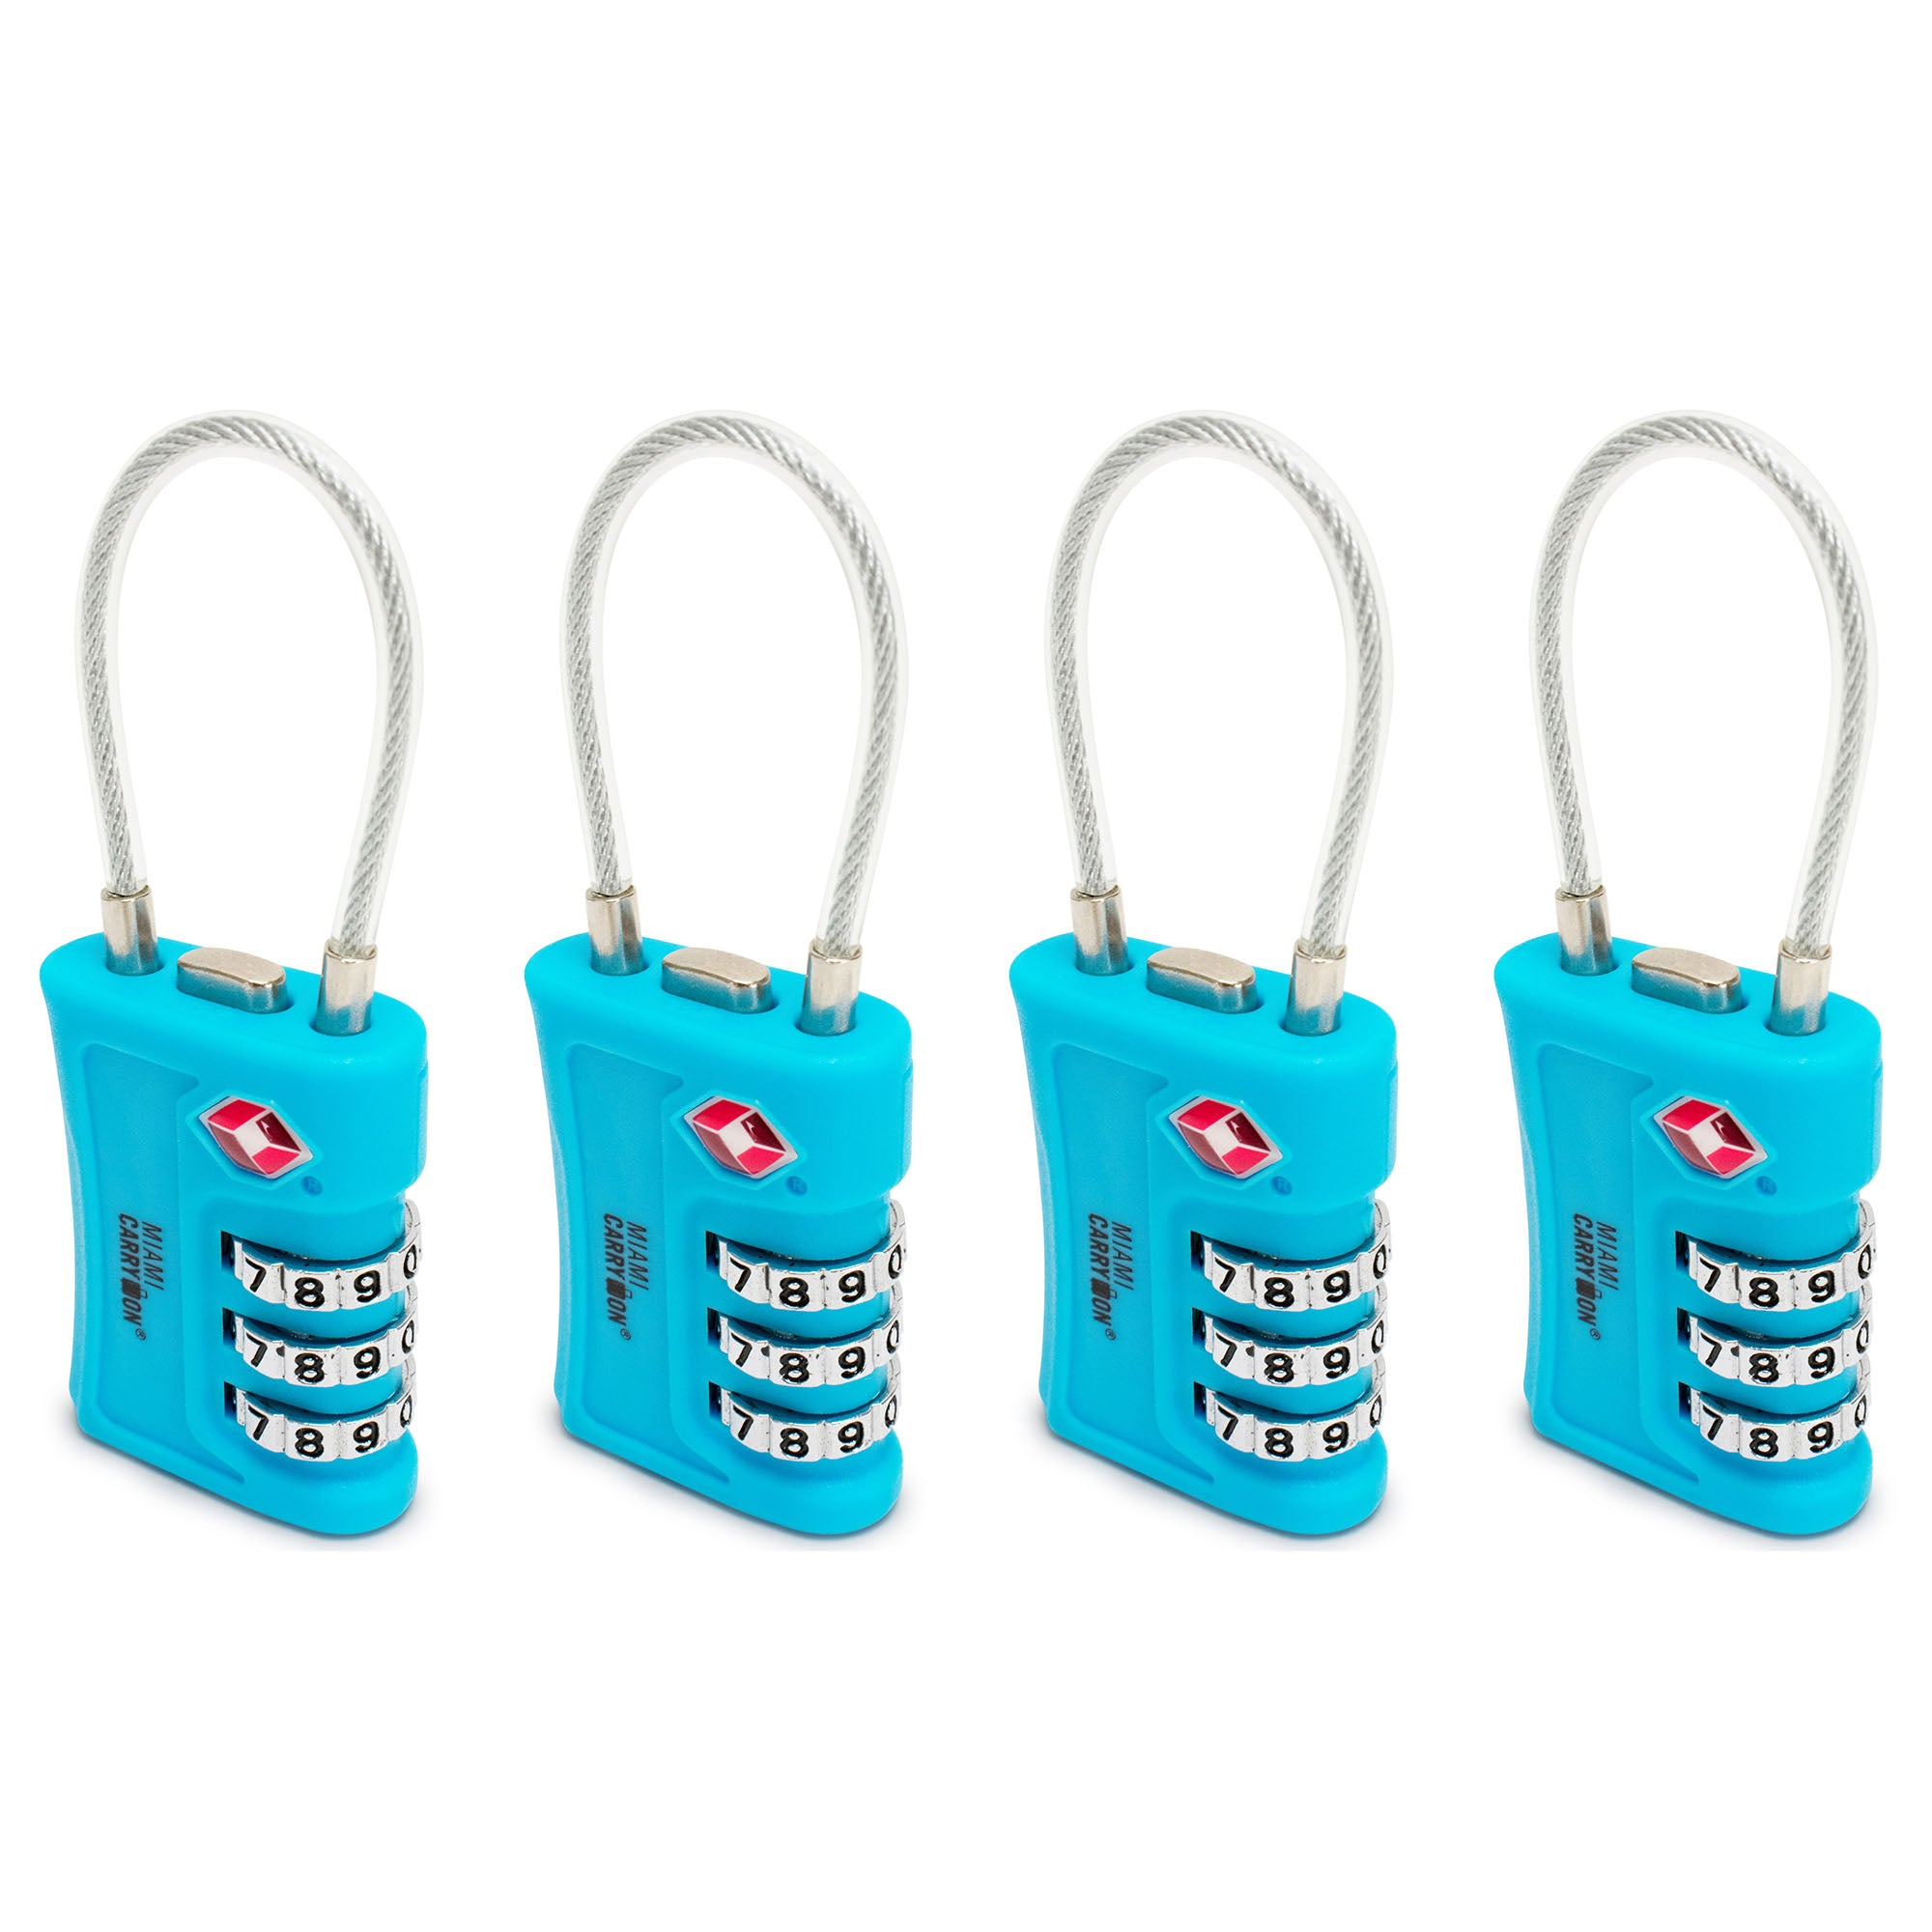 TSA Approved Cable Combination Padlock [VALUE SET] - Light Blue / 4 Pack - Travellty